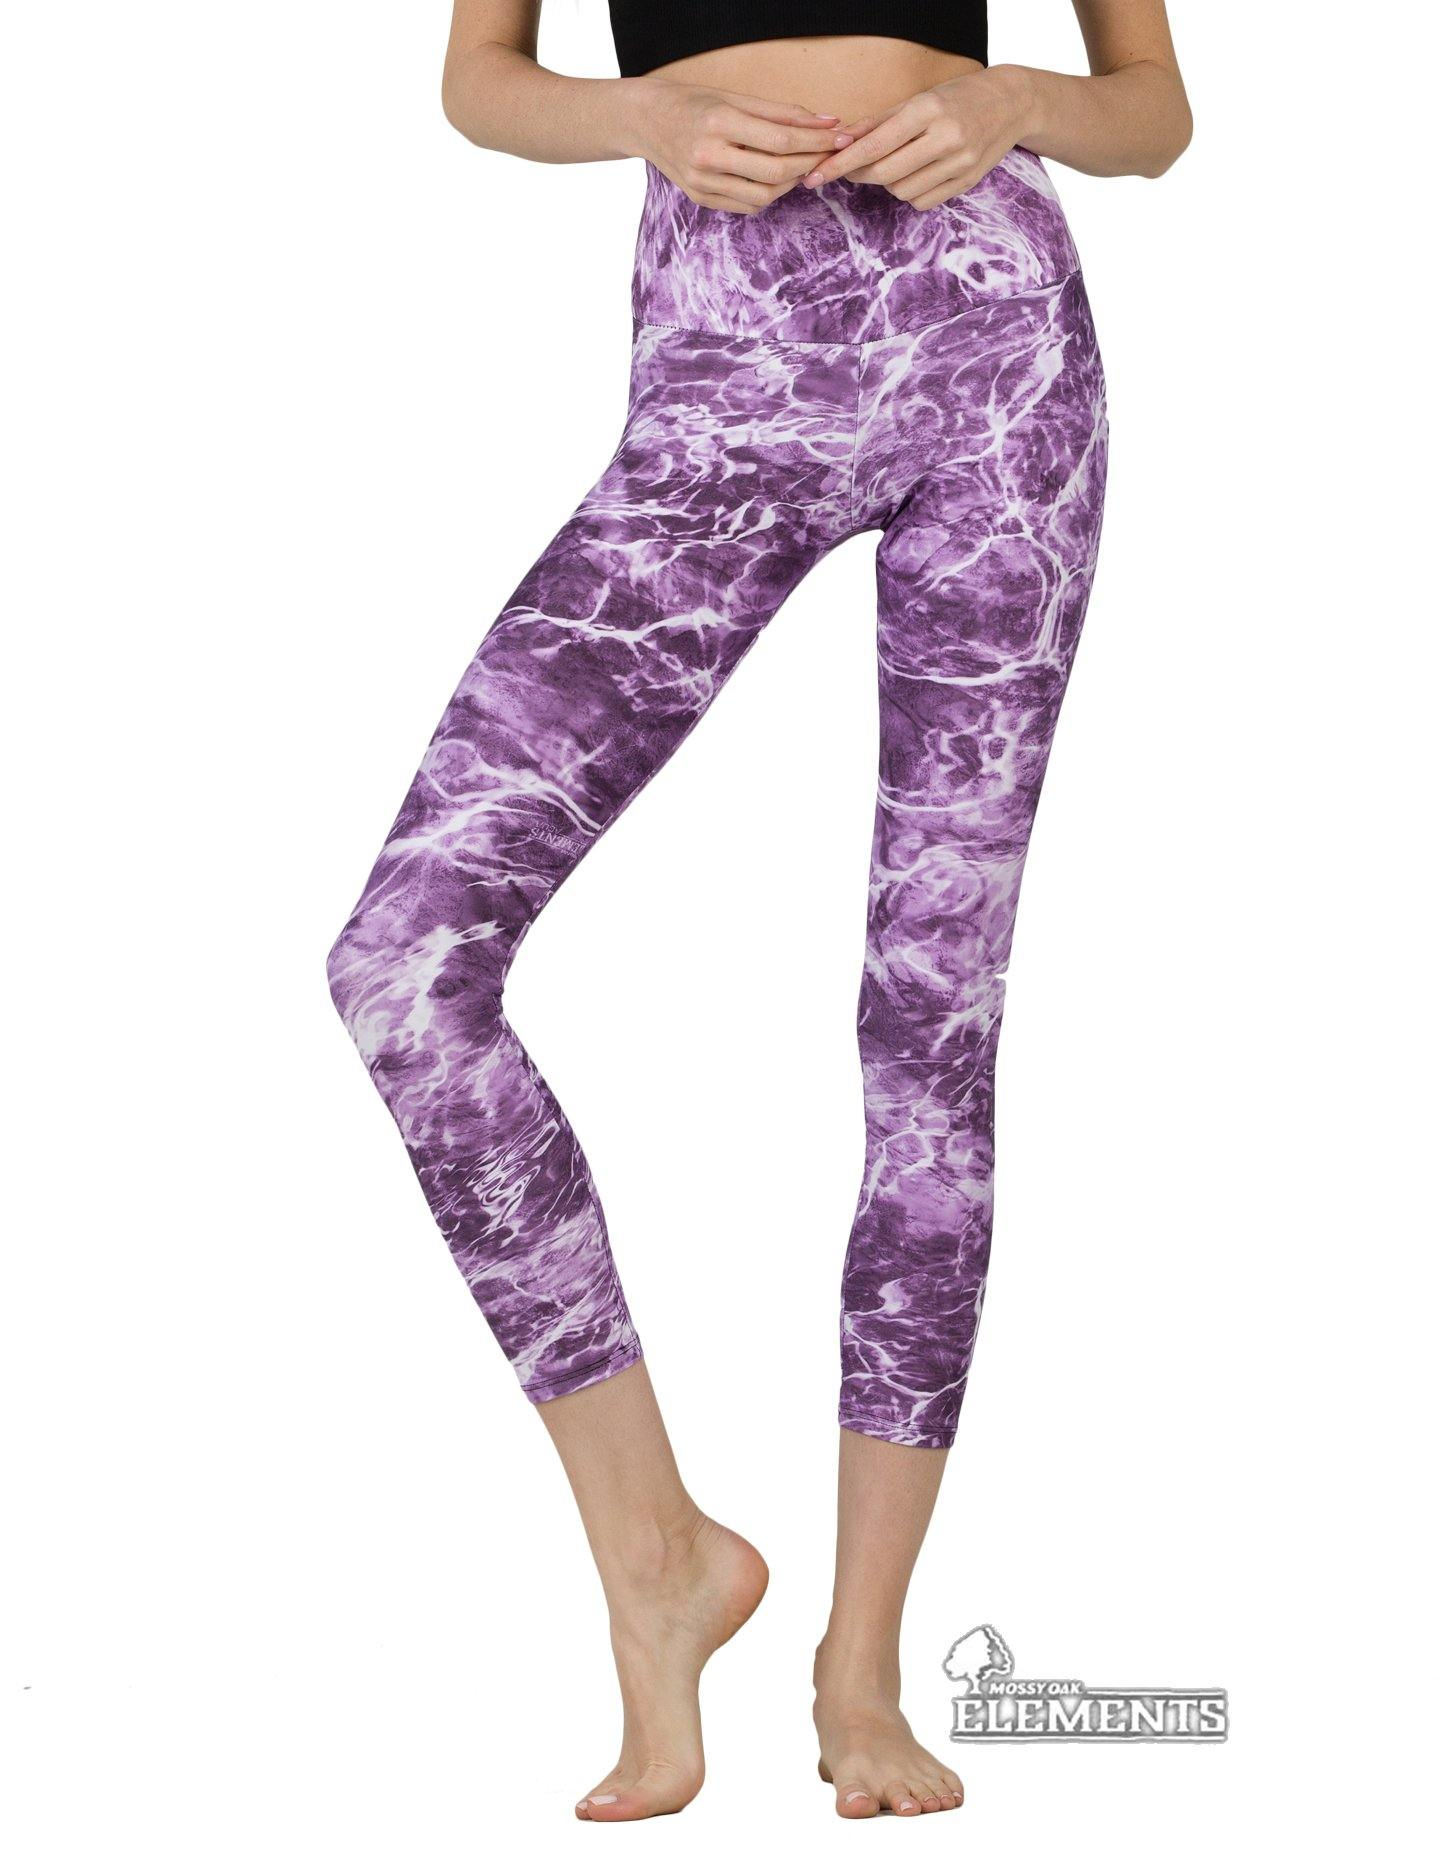 Apsara Leggings High Waist Cropped, Mossy Oak Elements Man-o-War